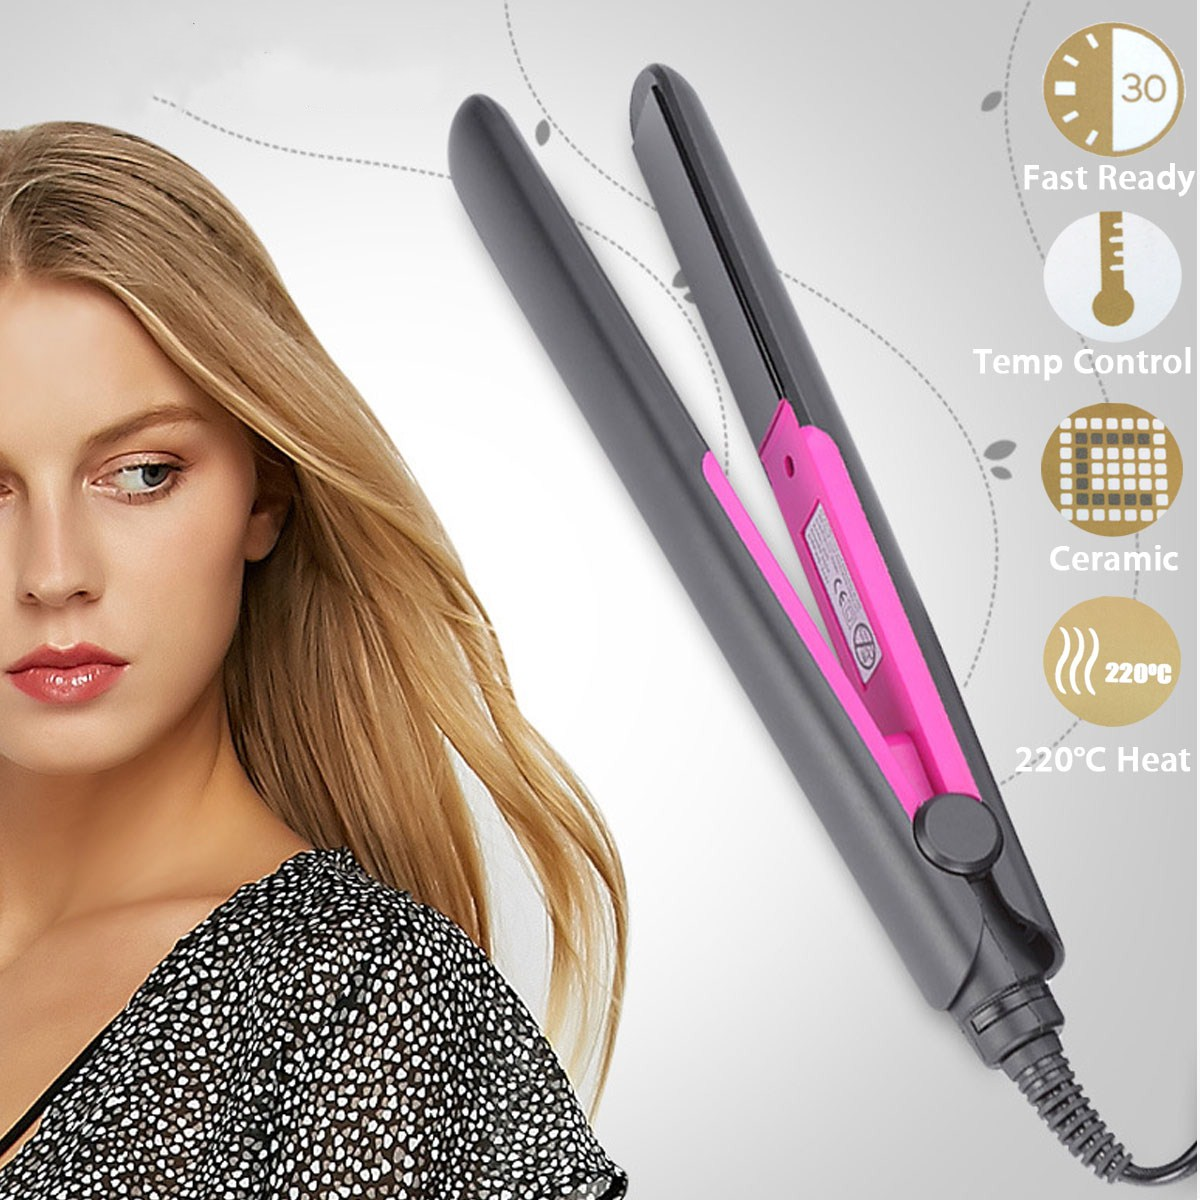 Fast Heating Flat Iron Straightening Irons Styling Tools Professional Ceramic Tourmaline Plate Perm Hair Straightener fiso original mini hair straightener iron tourmaline ceramic heating plate electronic hair styling tool travel essential eu plug